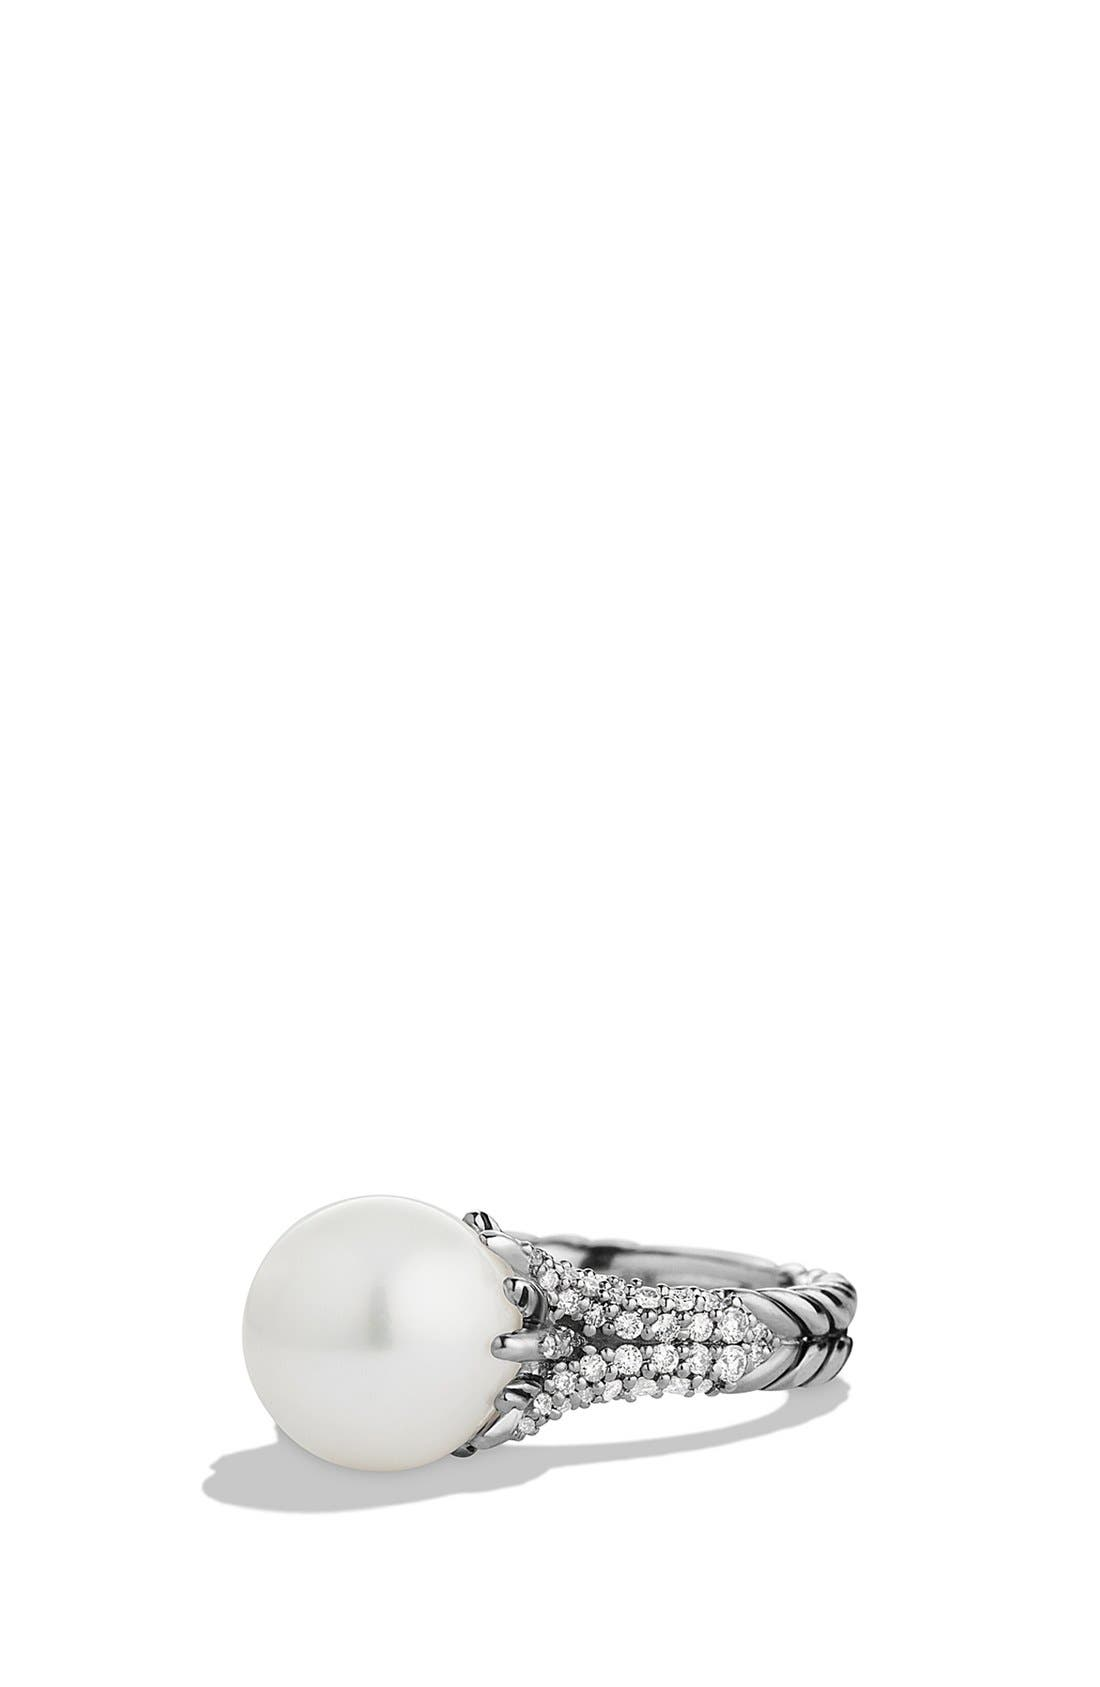 'Starburst' Pearl Ring with Diamonds,                             Main thumbnail 1, color,                             PEARL